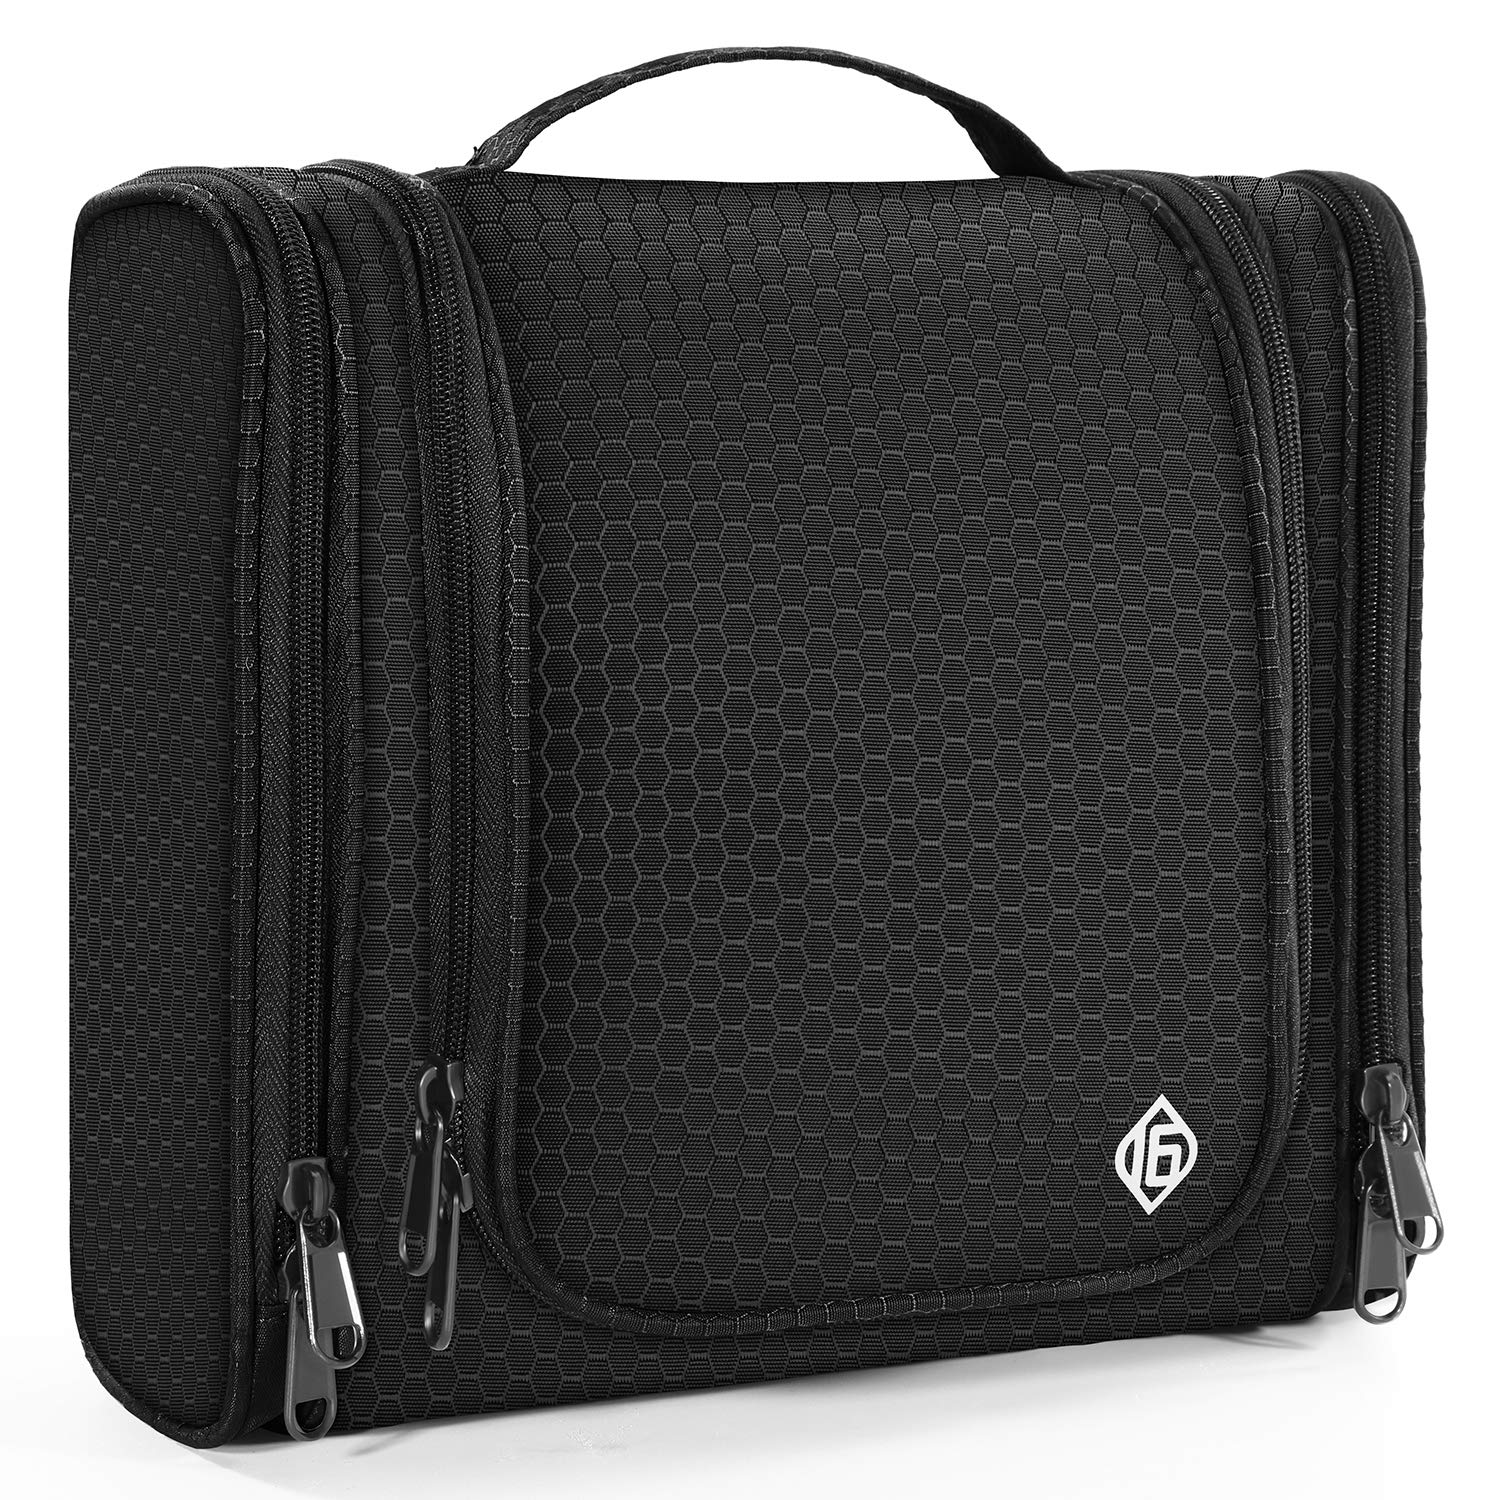 16 Large Toiletry Travel Bag for Men and Women Heavy Duty Waterproof Sturdy Hook Shower bag ONLY SIXTEEN by 16 ONLY SIXTEEN